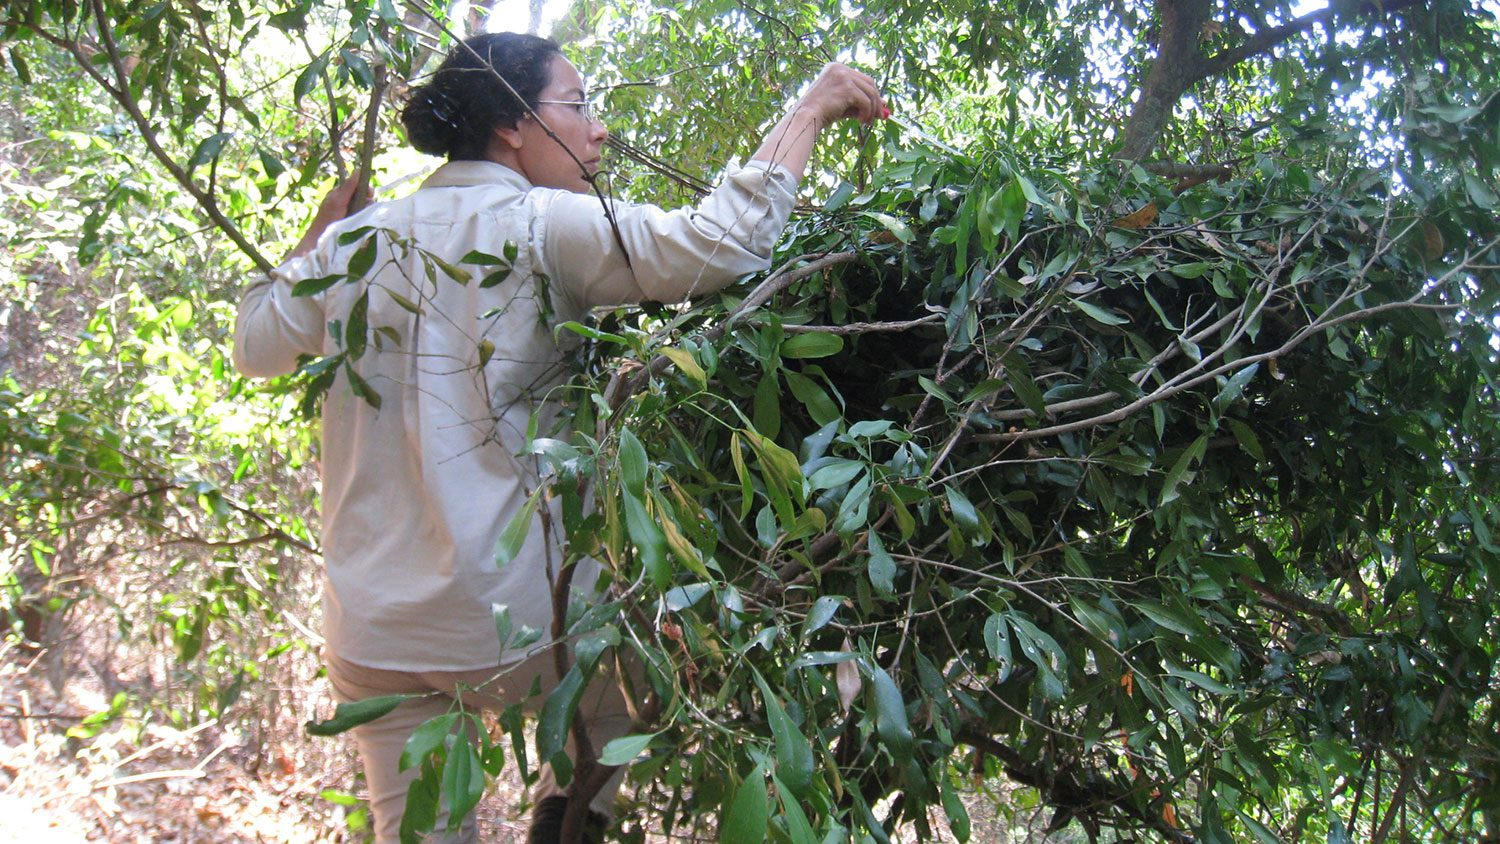 Adriana Hernandez-Aguilar swabbing leaf in nest for microbes.